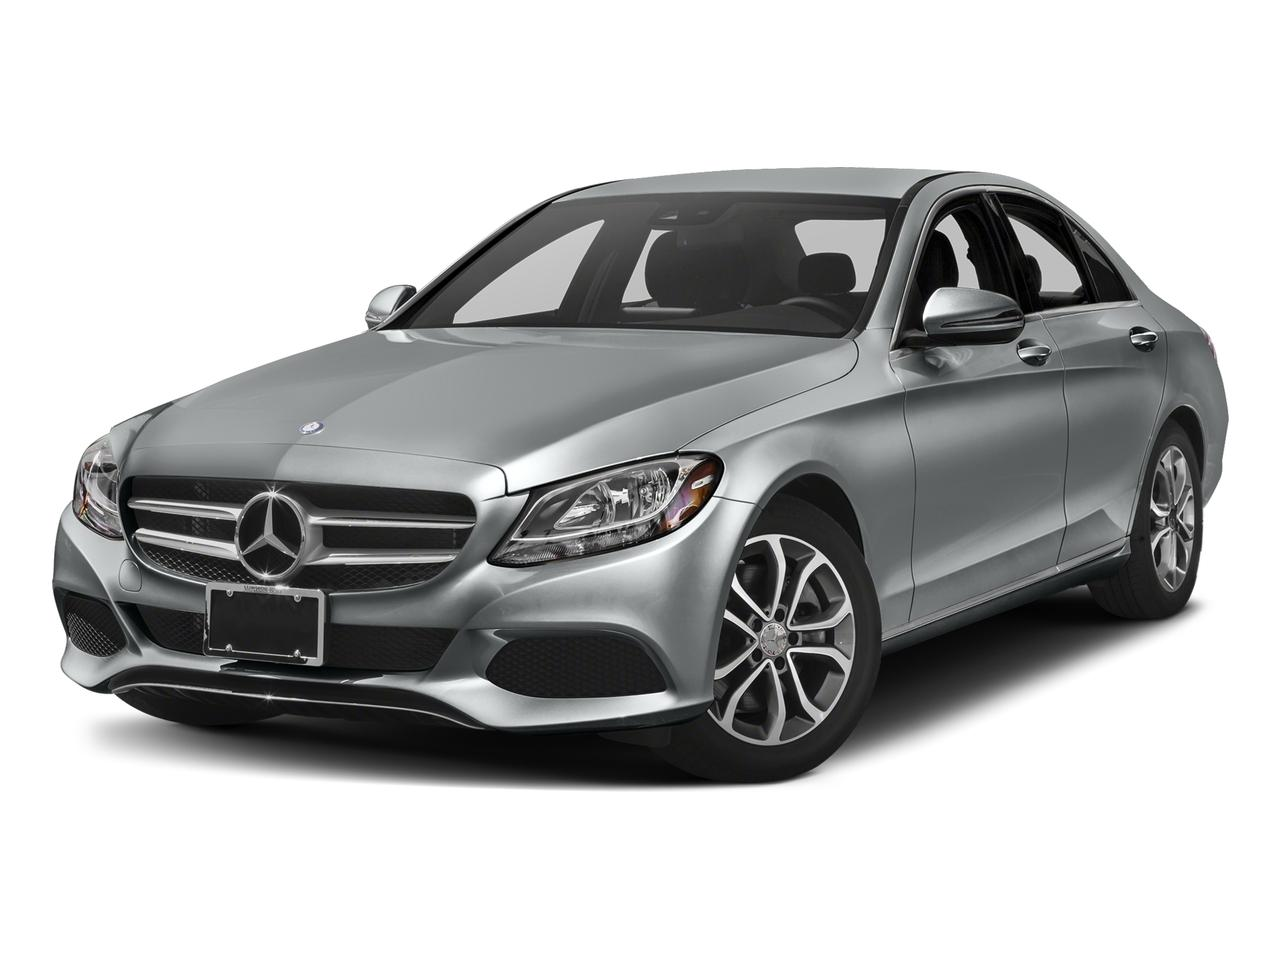 2017 Mercedes-Benz C-Class Vehicle Photo in San Antonio, TX 78230